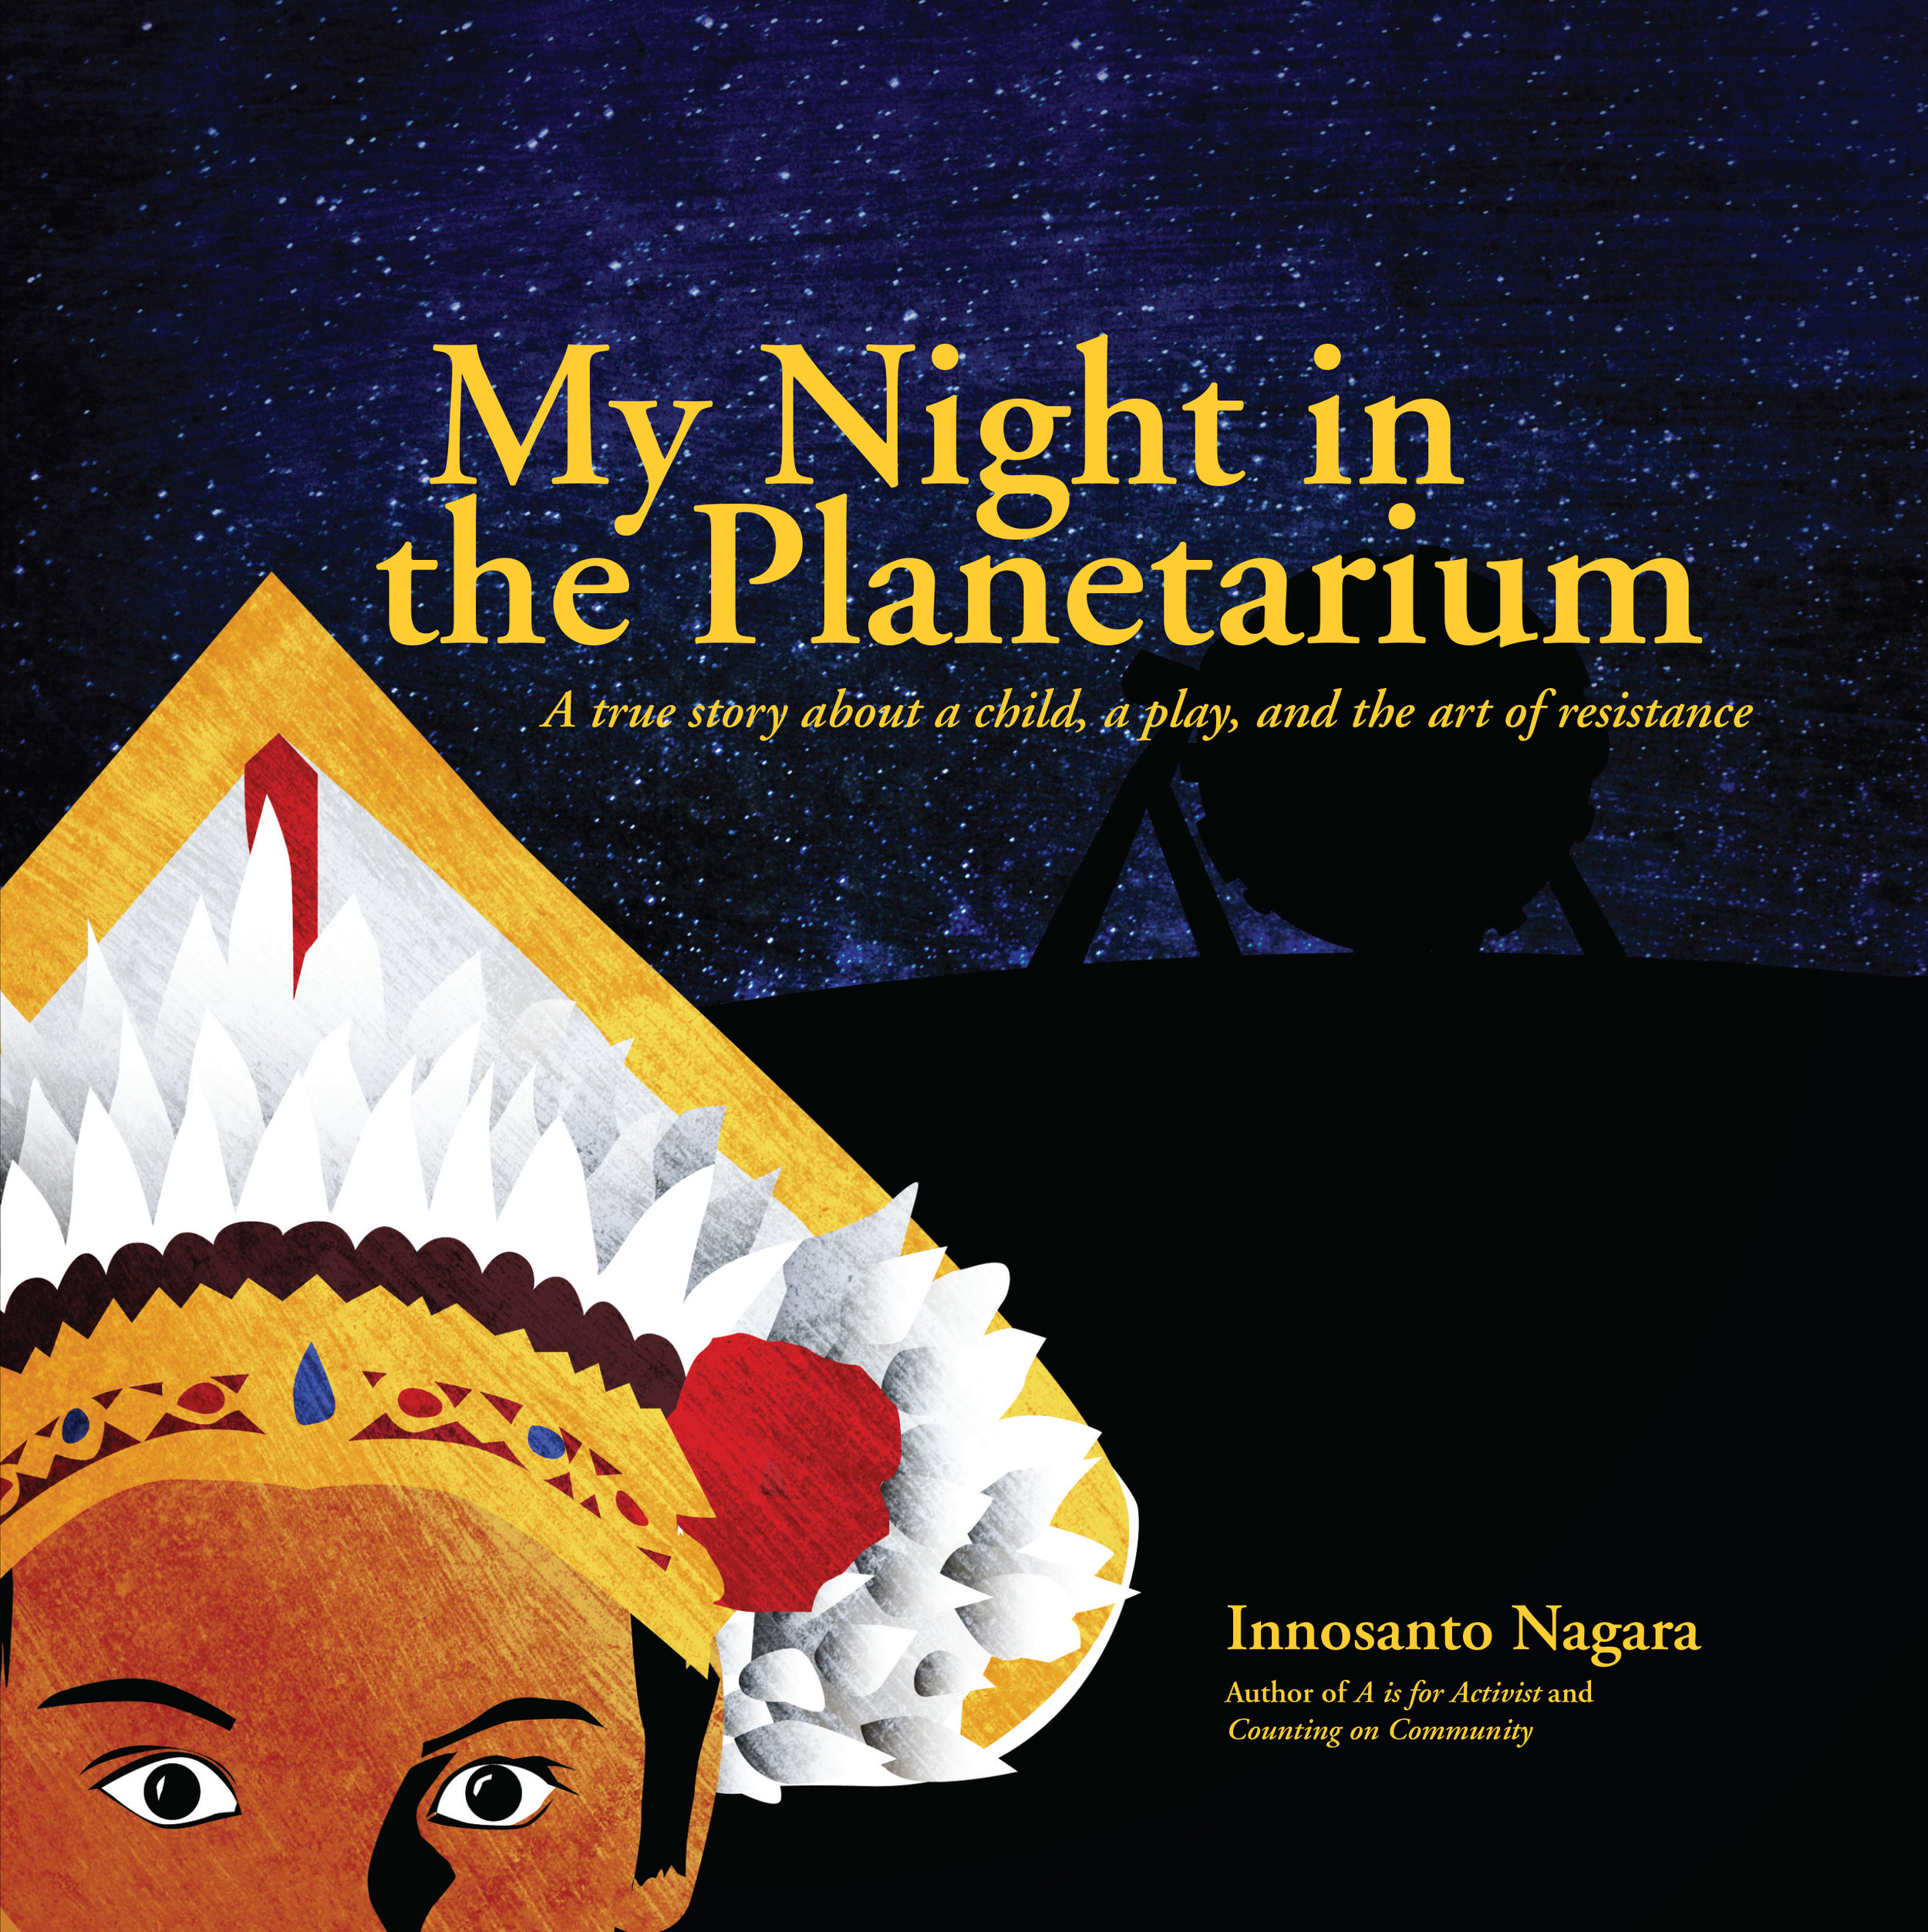 Learn about  My Night in the Planetarium and more of Innosanto's books at  aisforactivist.com